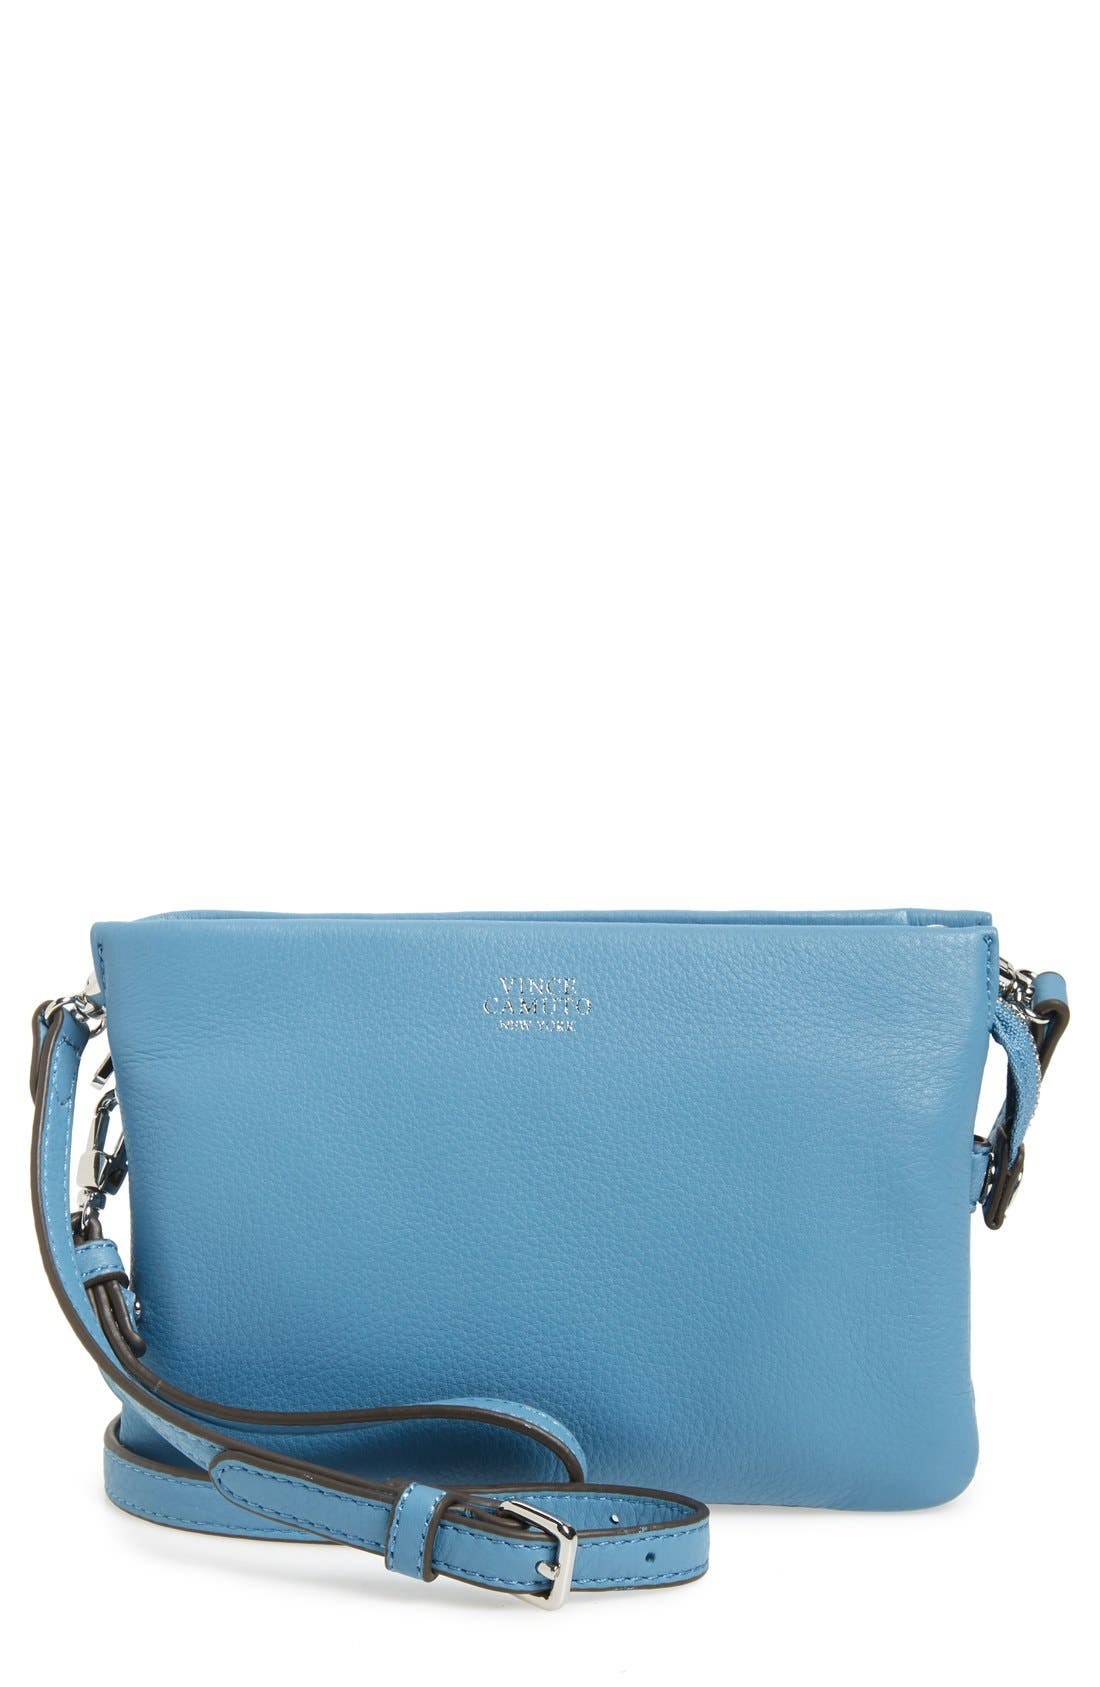 'Cami' Leather Crossbody Bag,                             Main thumbnail 23, color,